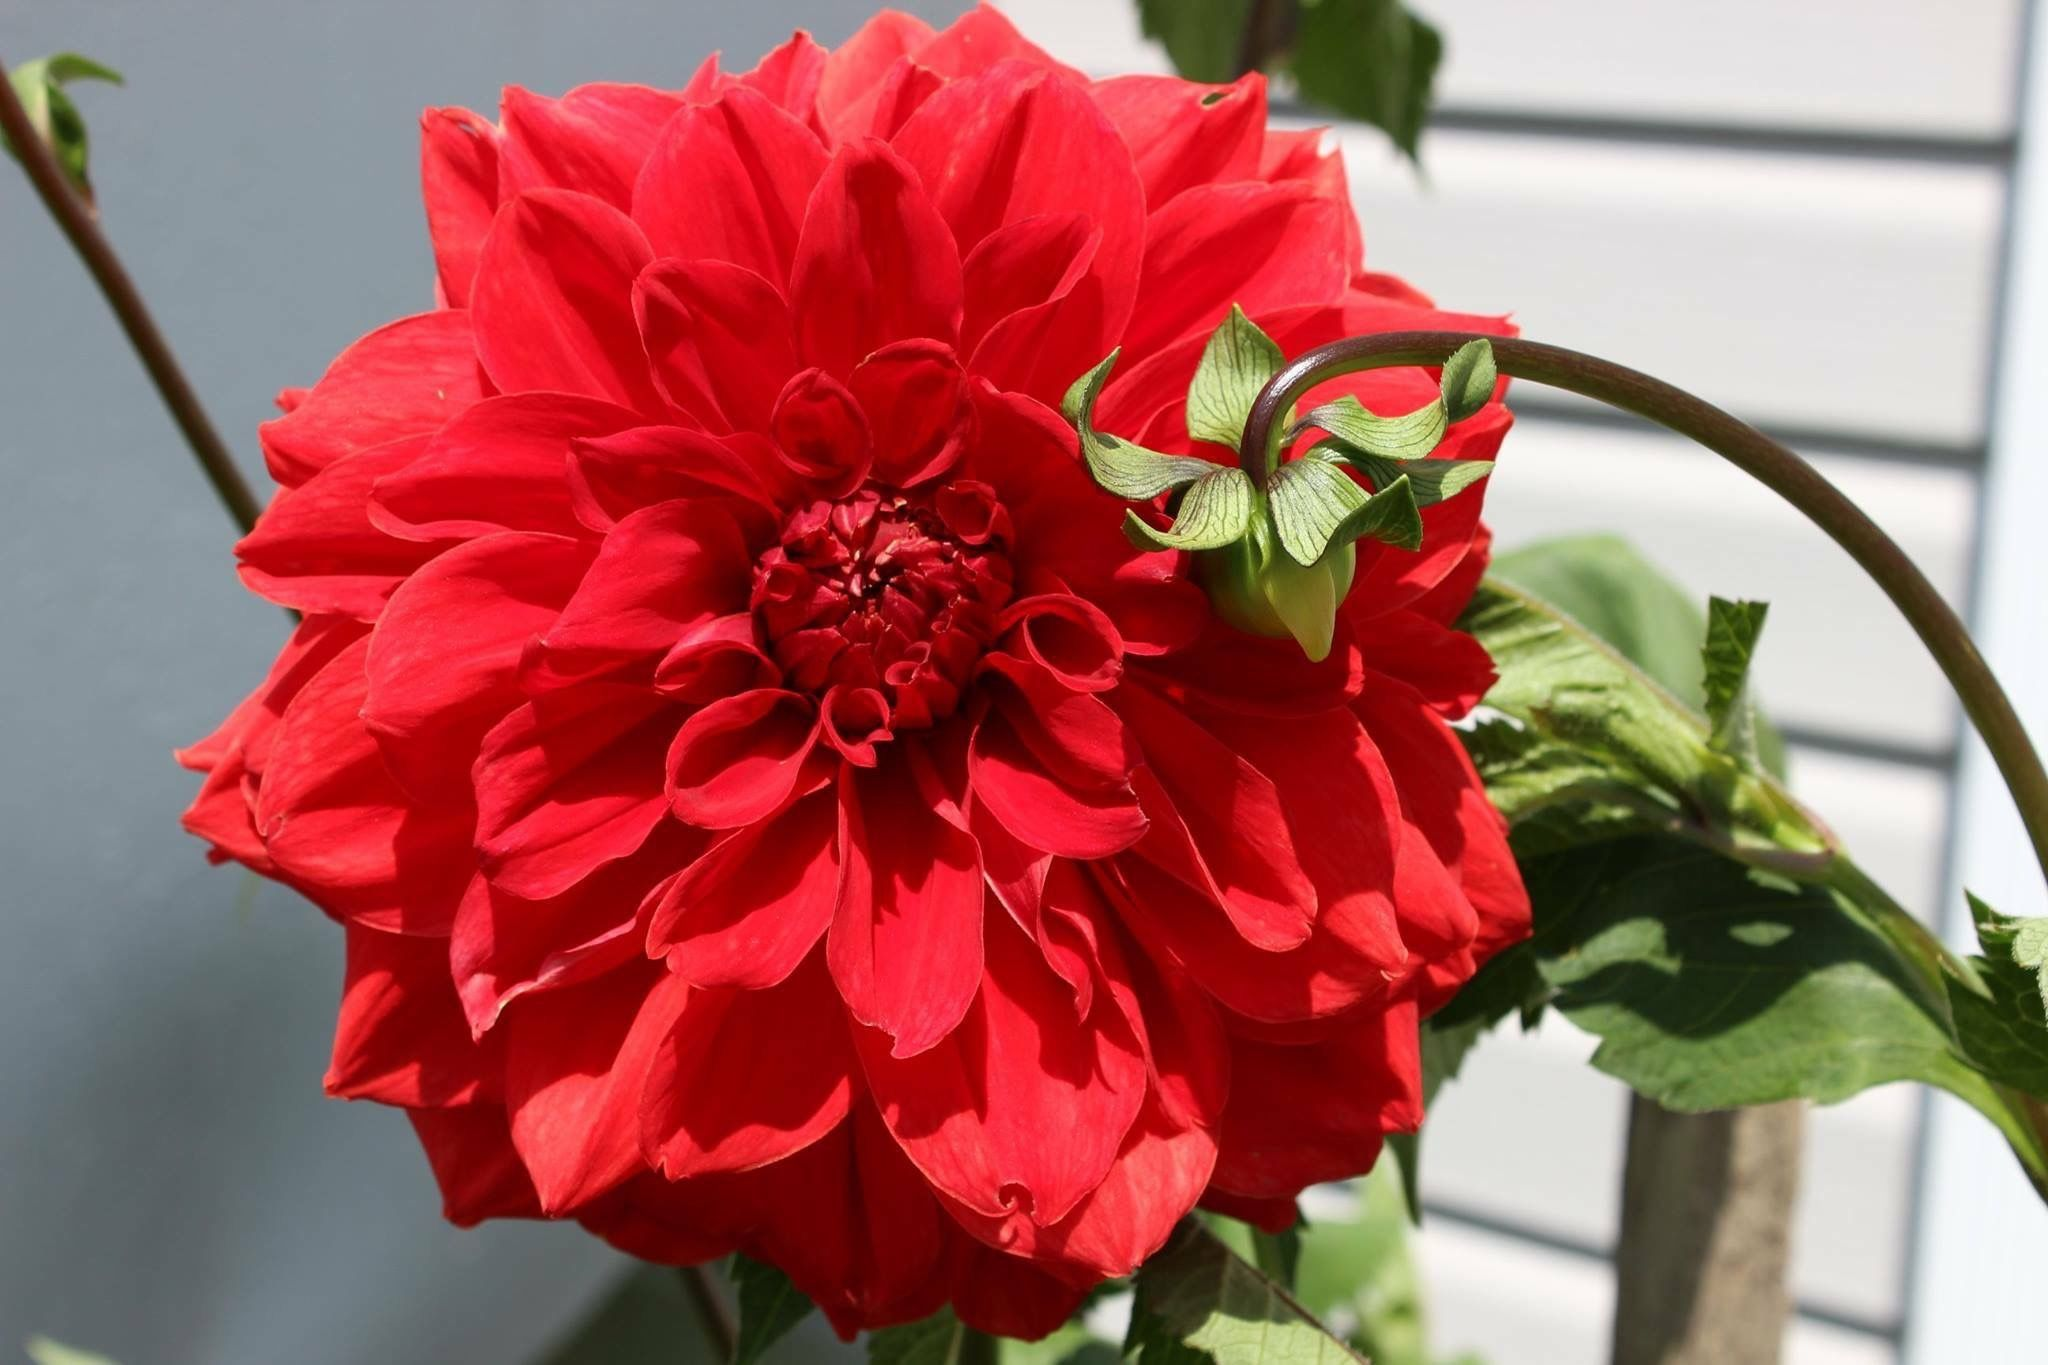 Mamaws big red my dahlias flowers and more pinterest dahlia dahlia flowers mamaws big red izmirmasajfo